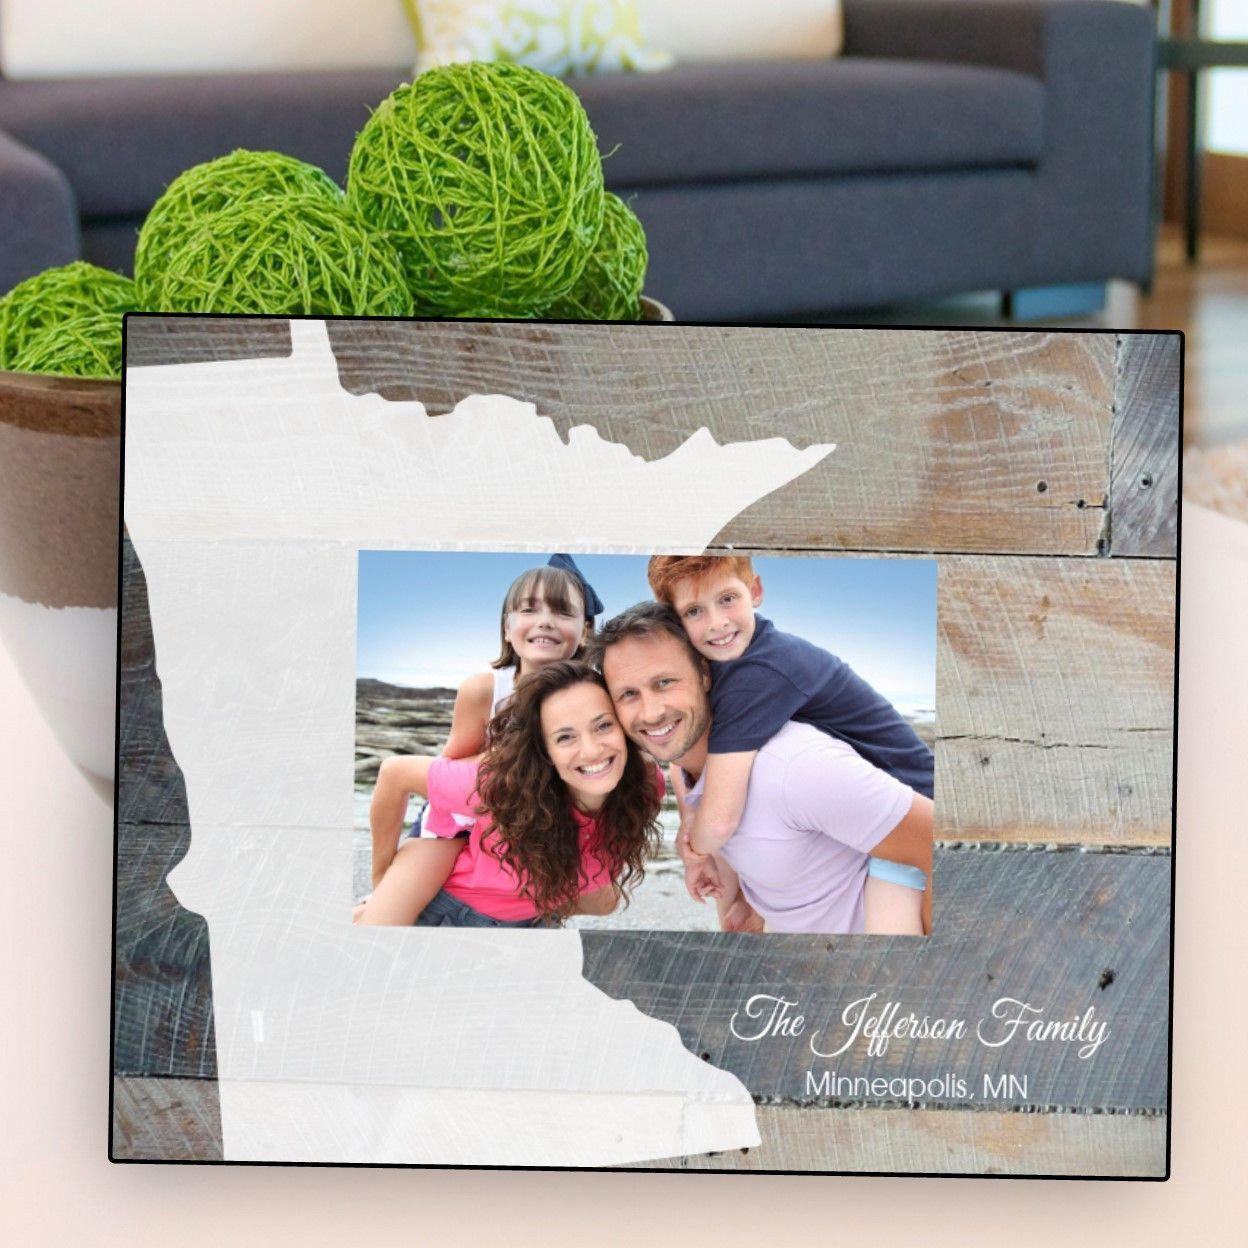 Image znhqpmojttyrge Purchase Wedding Personalized Souvenir State Picture Frame Frames JDS